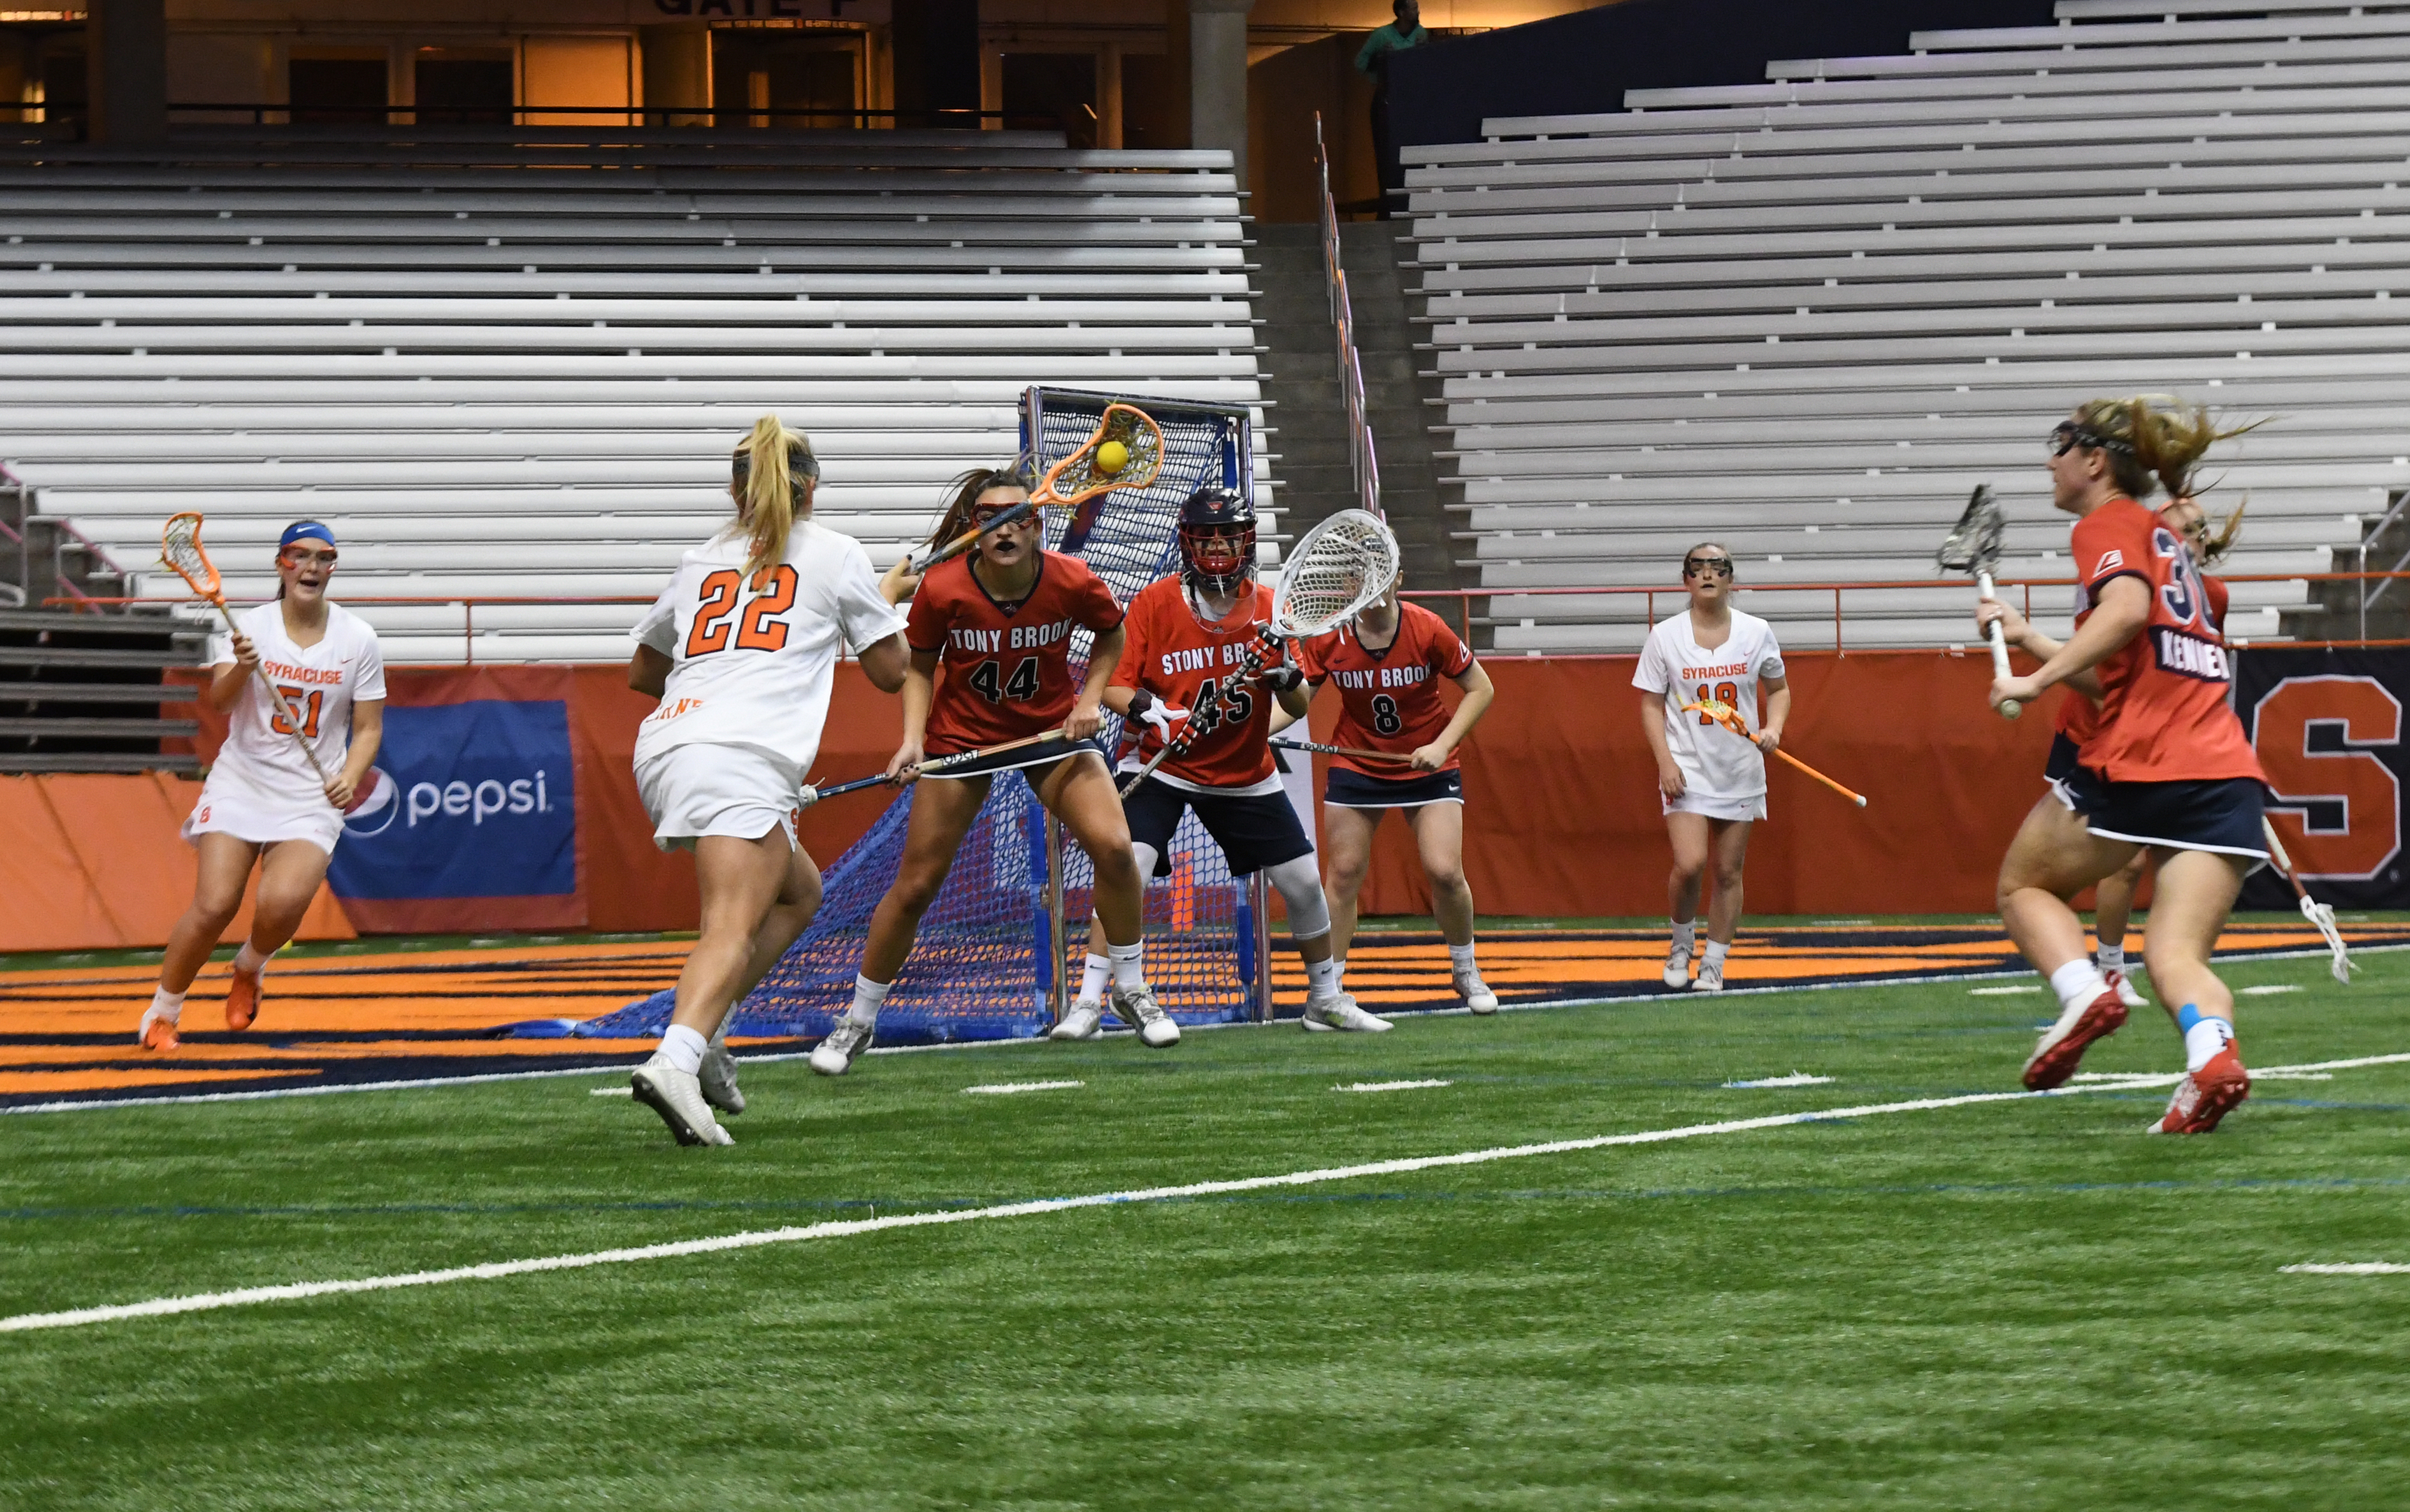 SU's Megan Carney runs toward the goal in the first half of Monday's game vs. Stony Brook. The sophomore tallied 7 shots and notched a pair of assists.